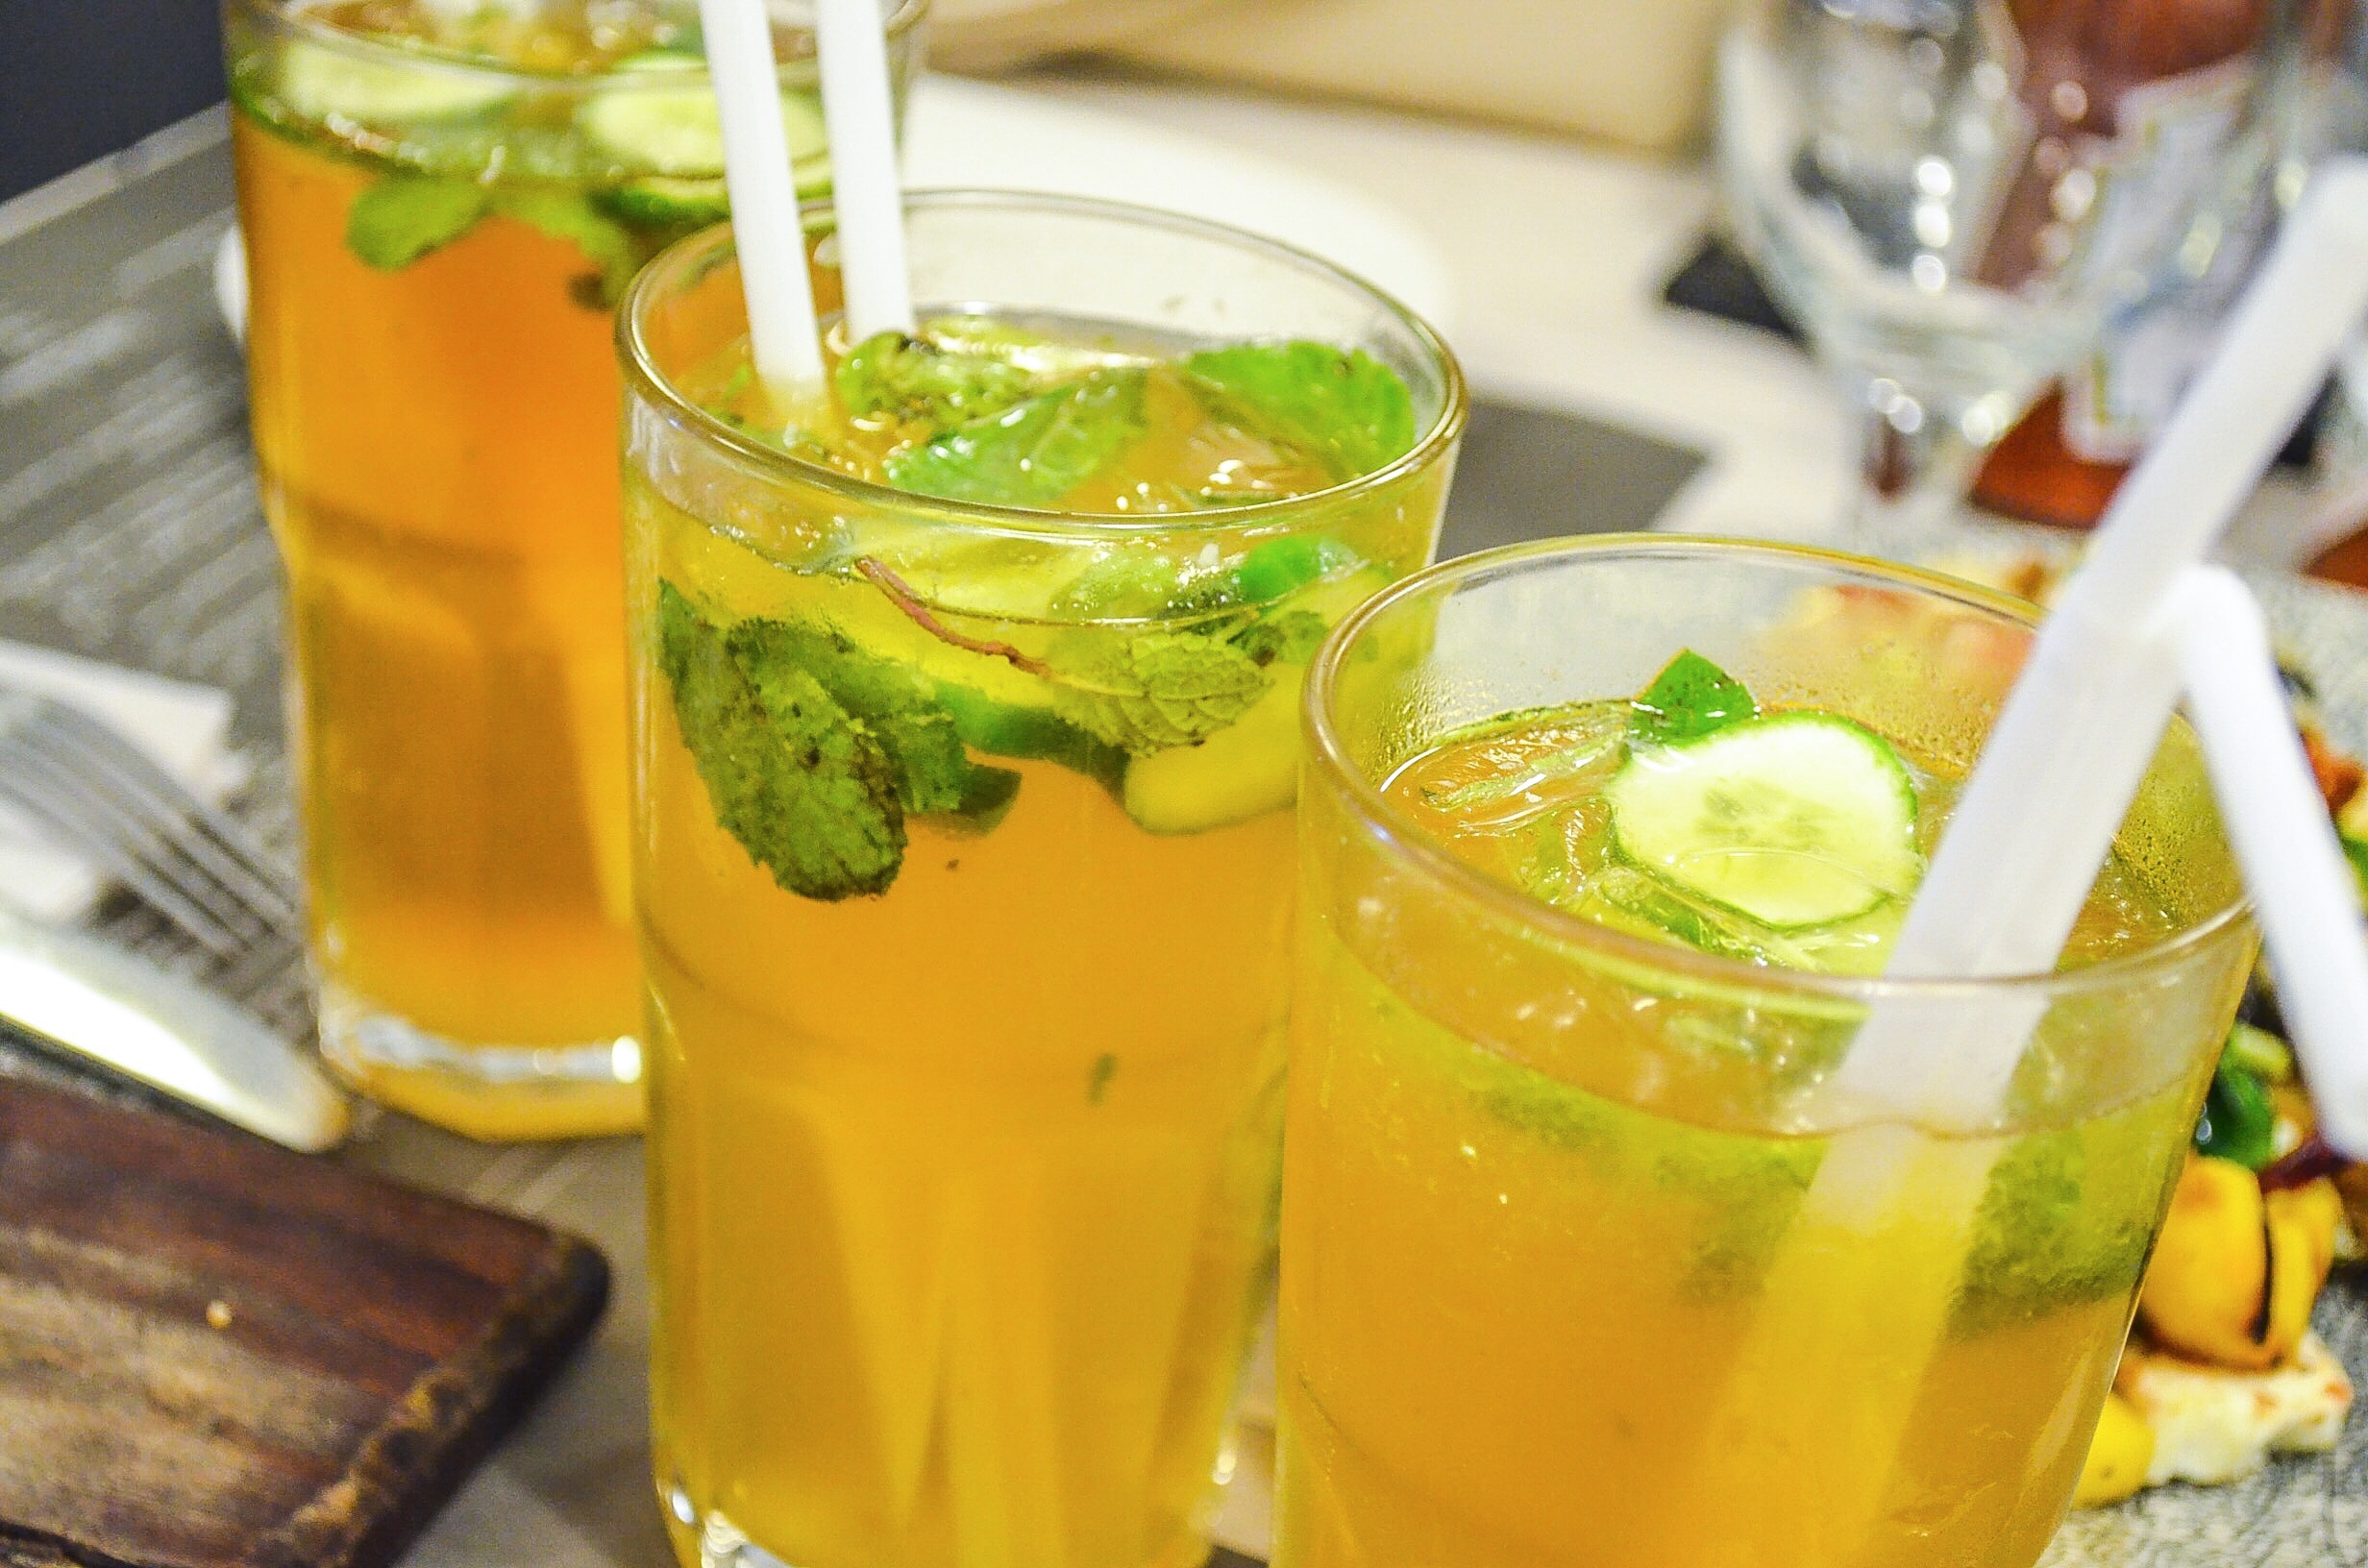 Refreshing Caramel Lemonade at The Pantry by The Polo Lounge (Mall One) - try this if you're feeling slightly adventurous and want a lemonade with a twist!